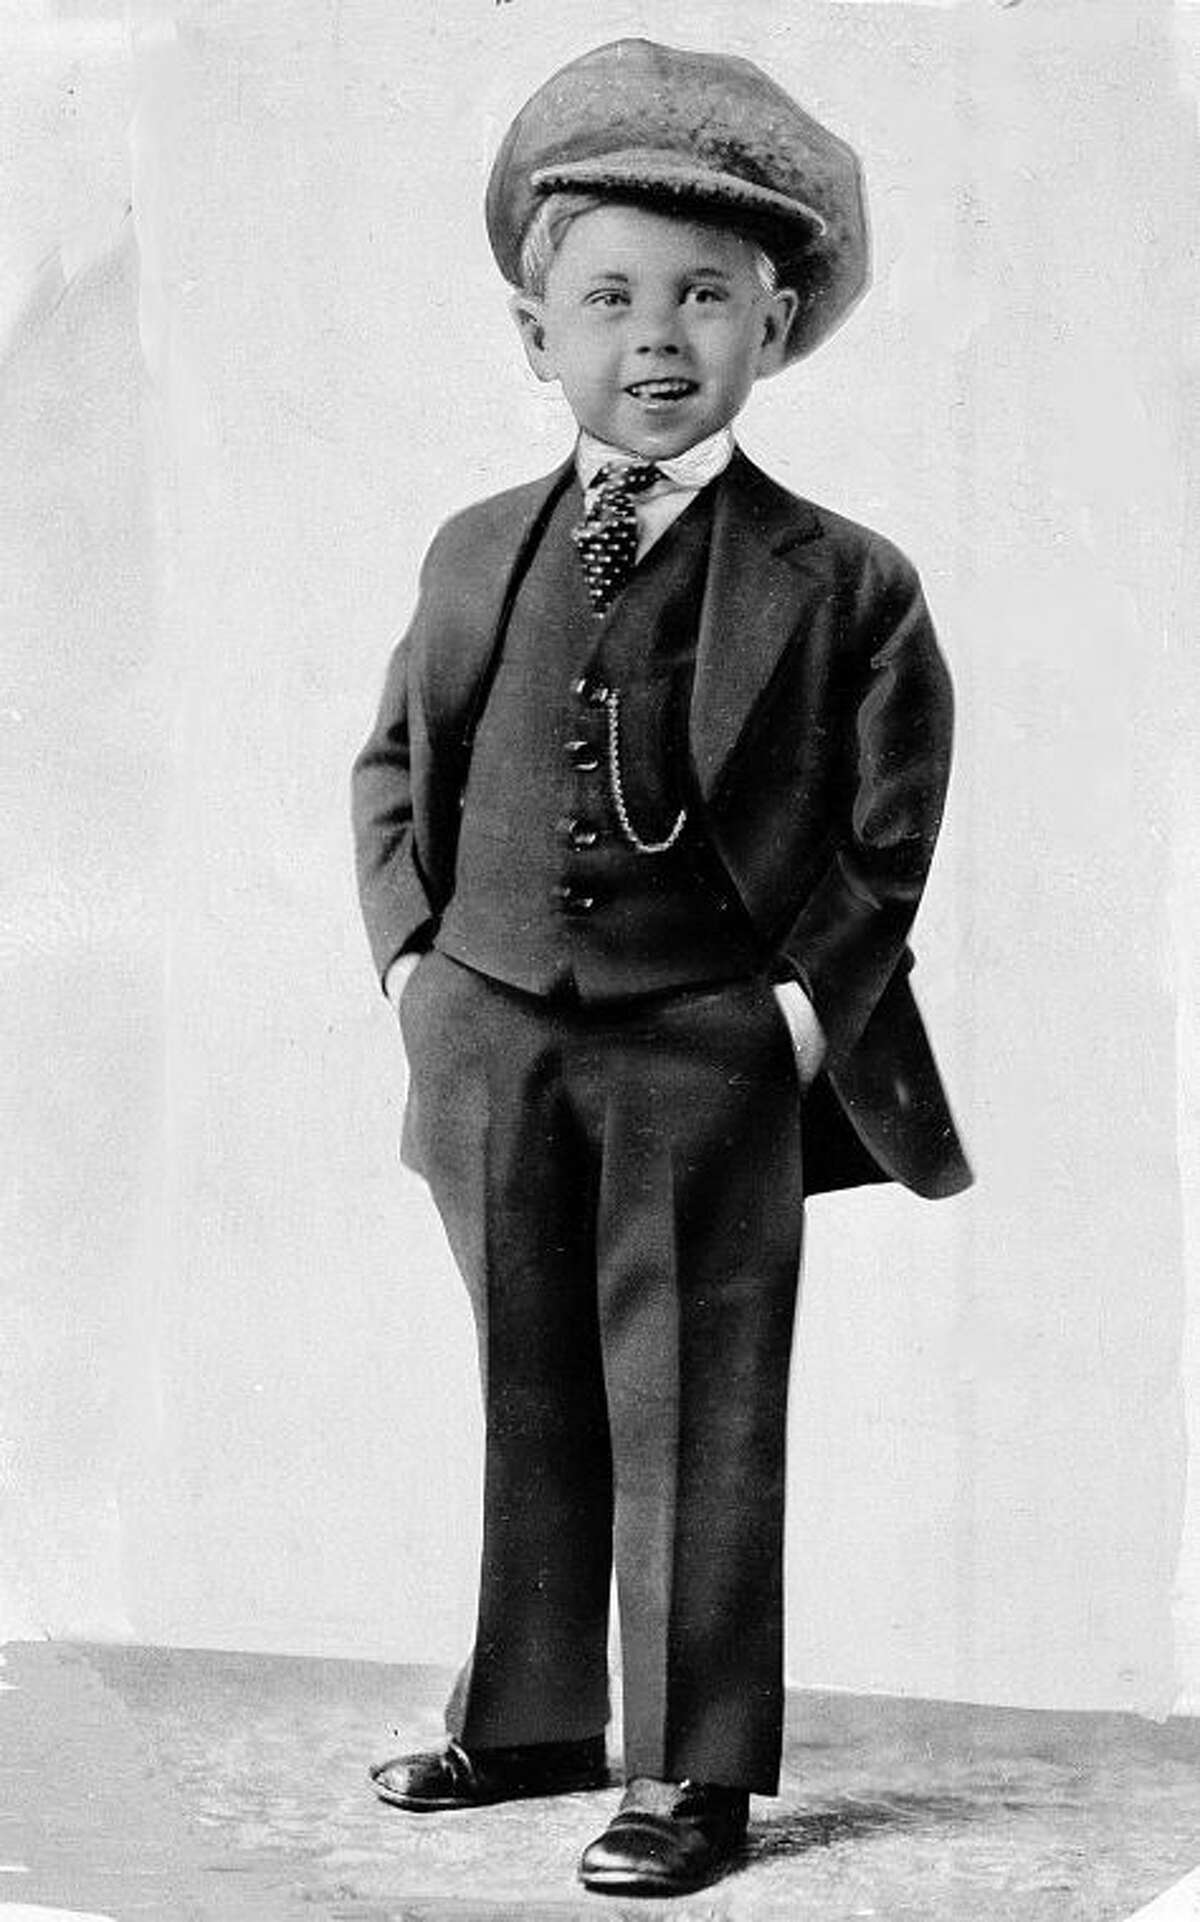 FILE - Child star Mickey Rooney poses for a promotional photo at age 5 in this photo dated about 1925. Rooney, a Hollywood legend whose career spanned more than 80 years, has died. He was 93. Los Angeles Police Commander Andrew Smith said that Rooney was with his family when he died Sunday, April 6, 2014, at his North Hollywood home. (AP Photo/File)